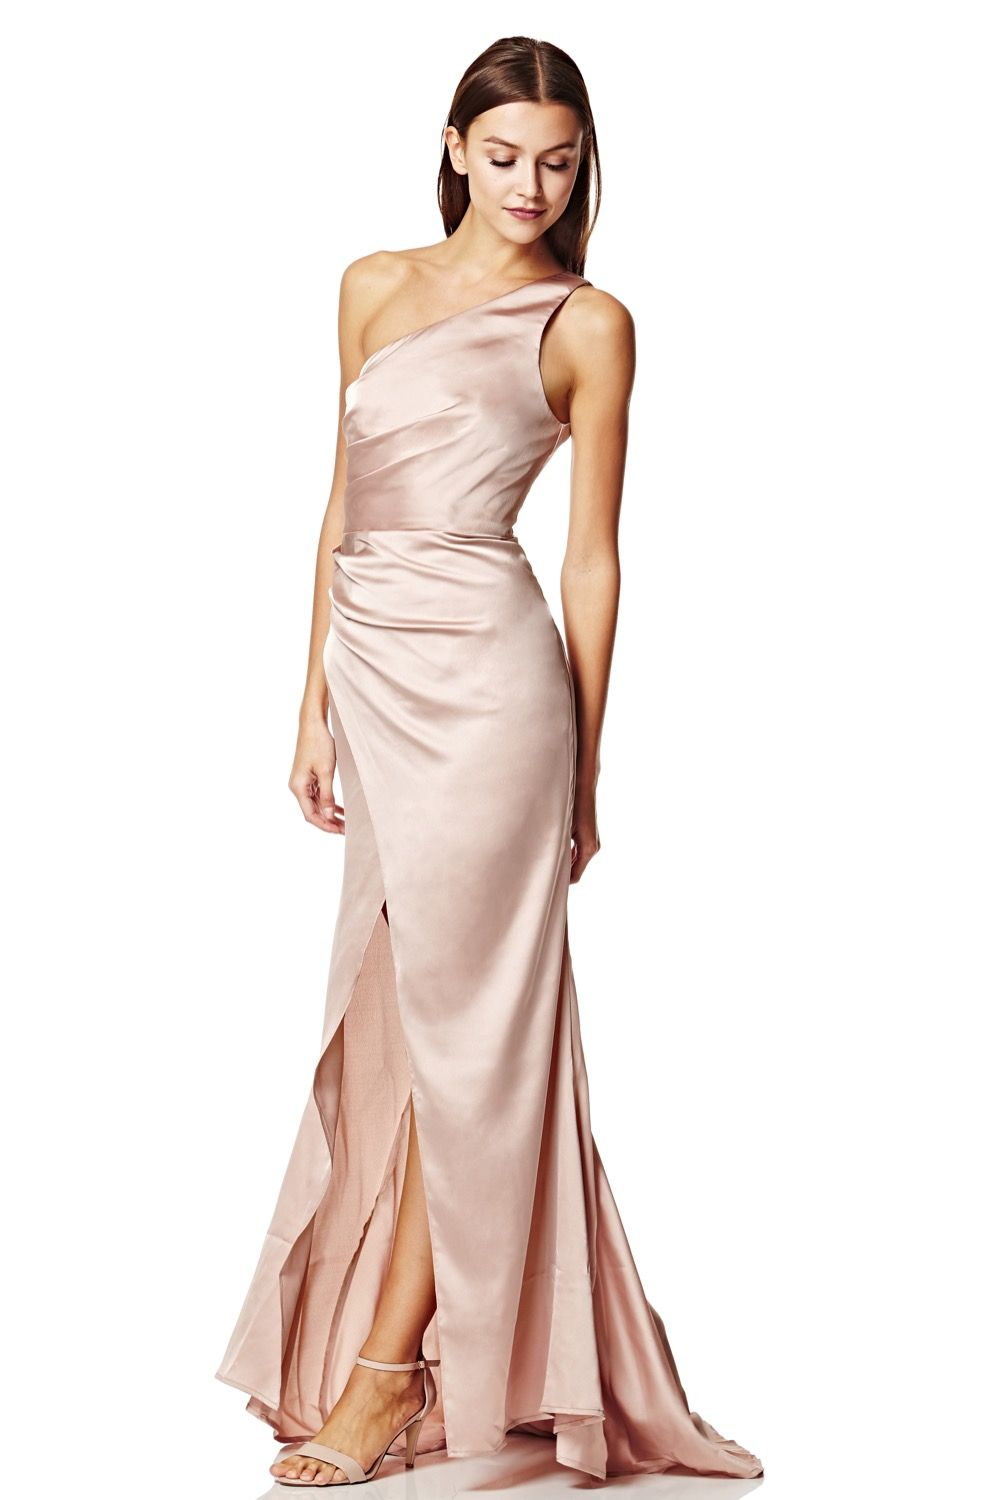 0332c8e083 Lisa One Shoulder Slinky Maxi Dress with Pleat Detail. #ootd #lookoftheday  #occasionwear #satindress #satingown #bridesmaids #ontrend #weddings ...